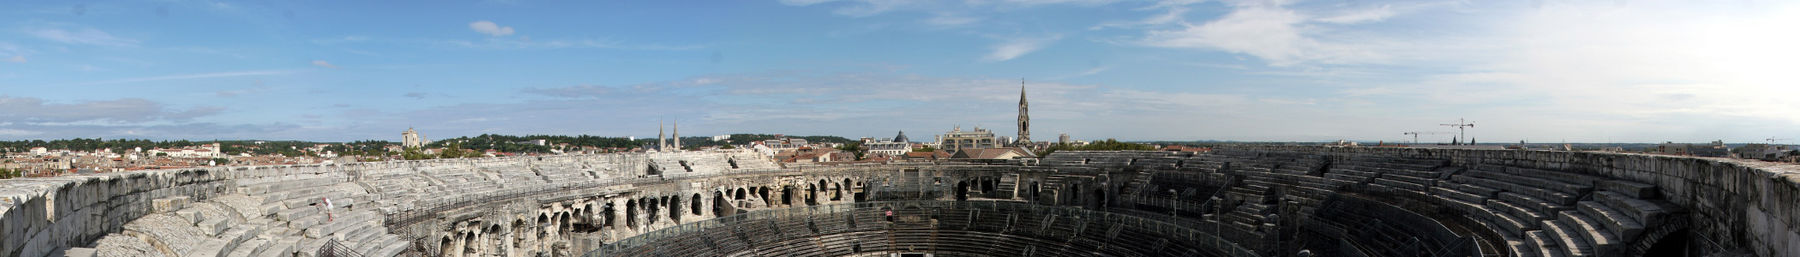 N mes wikivoyage for Nimes france code postal